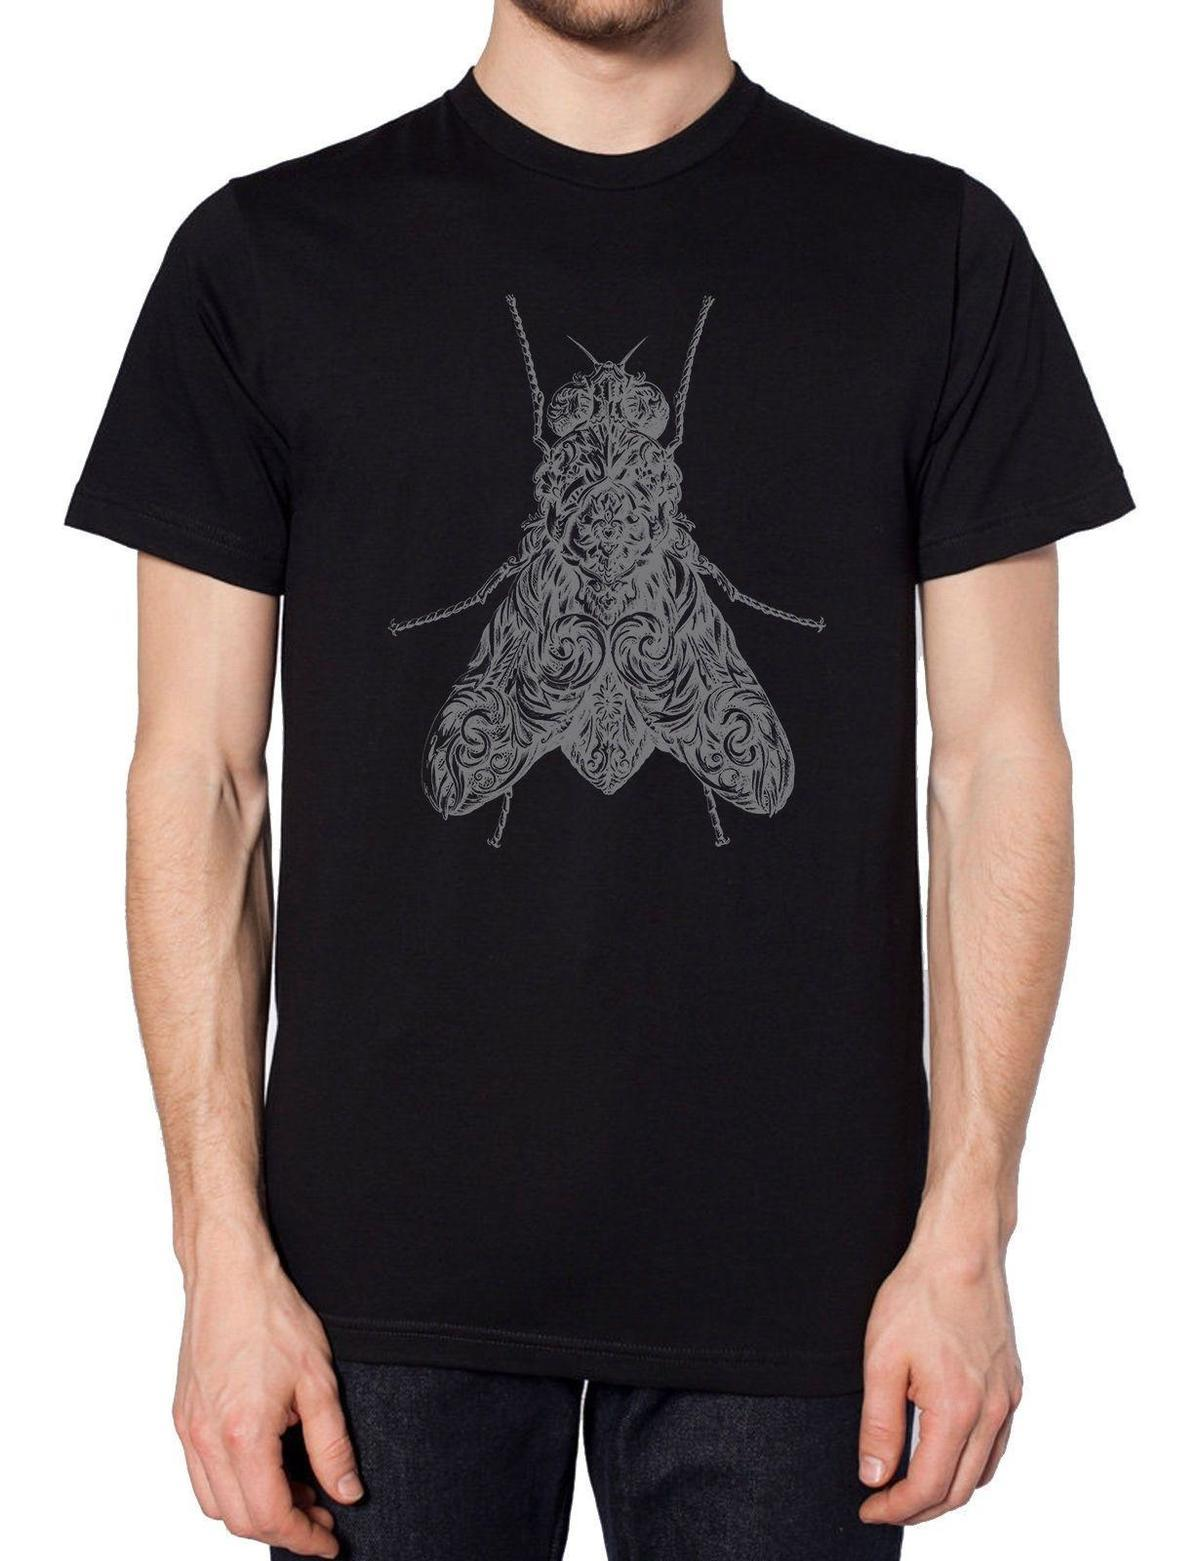 Fly Black T Shirt Moda Aztec Insect Dark Style Moda Grunge Rat Style Indie Mens 2018 marchio di moda T Shirt O-Collo